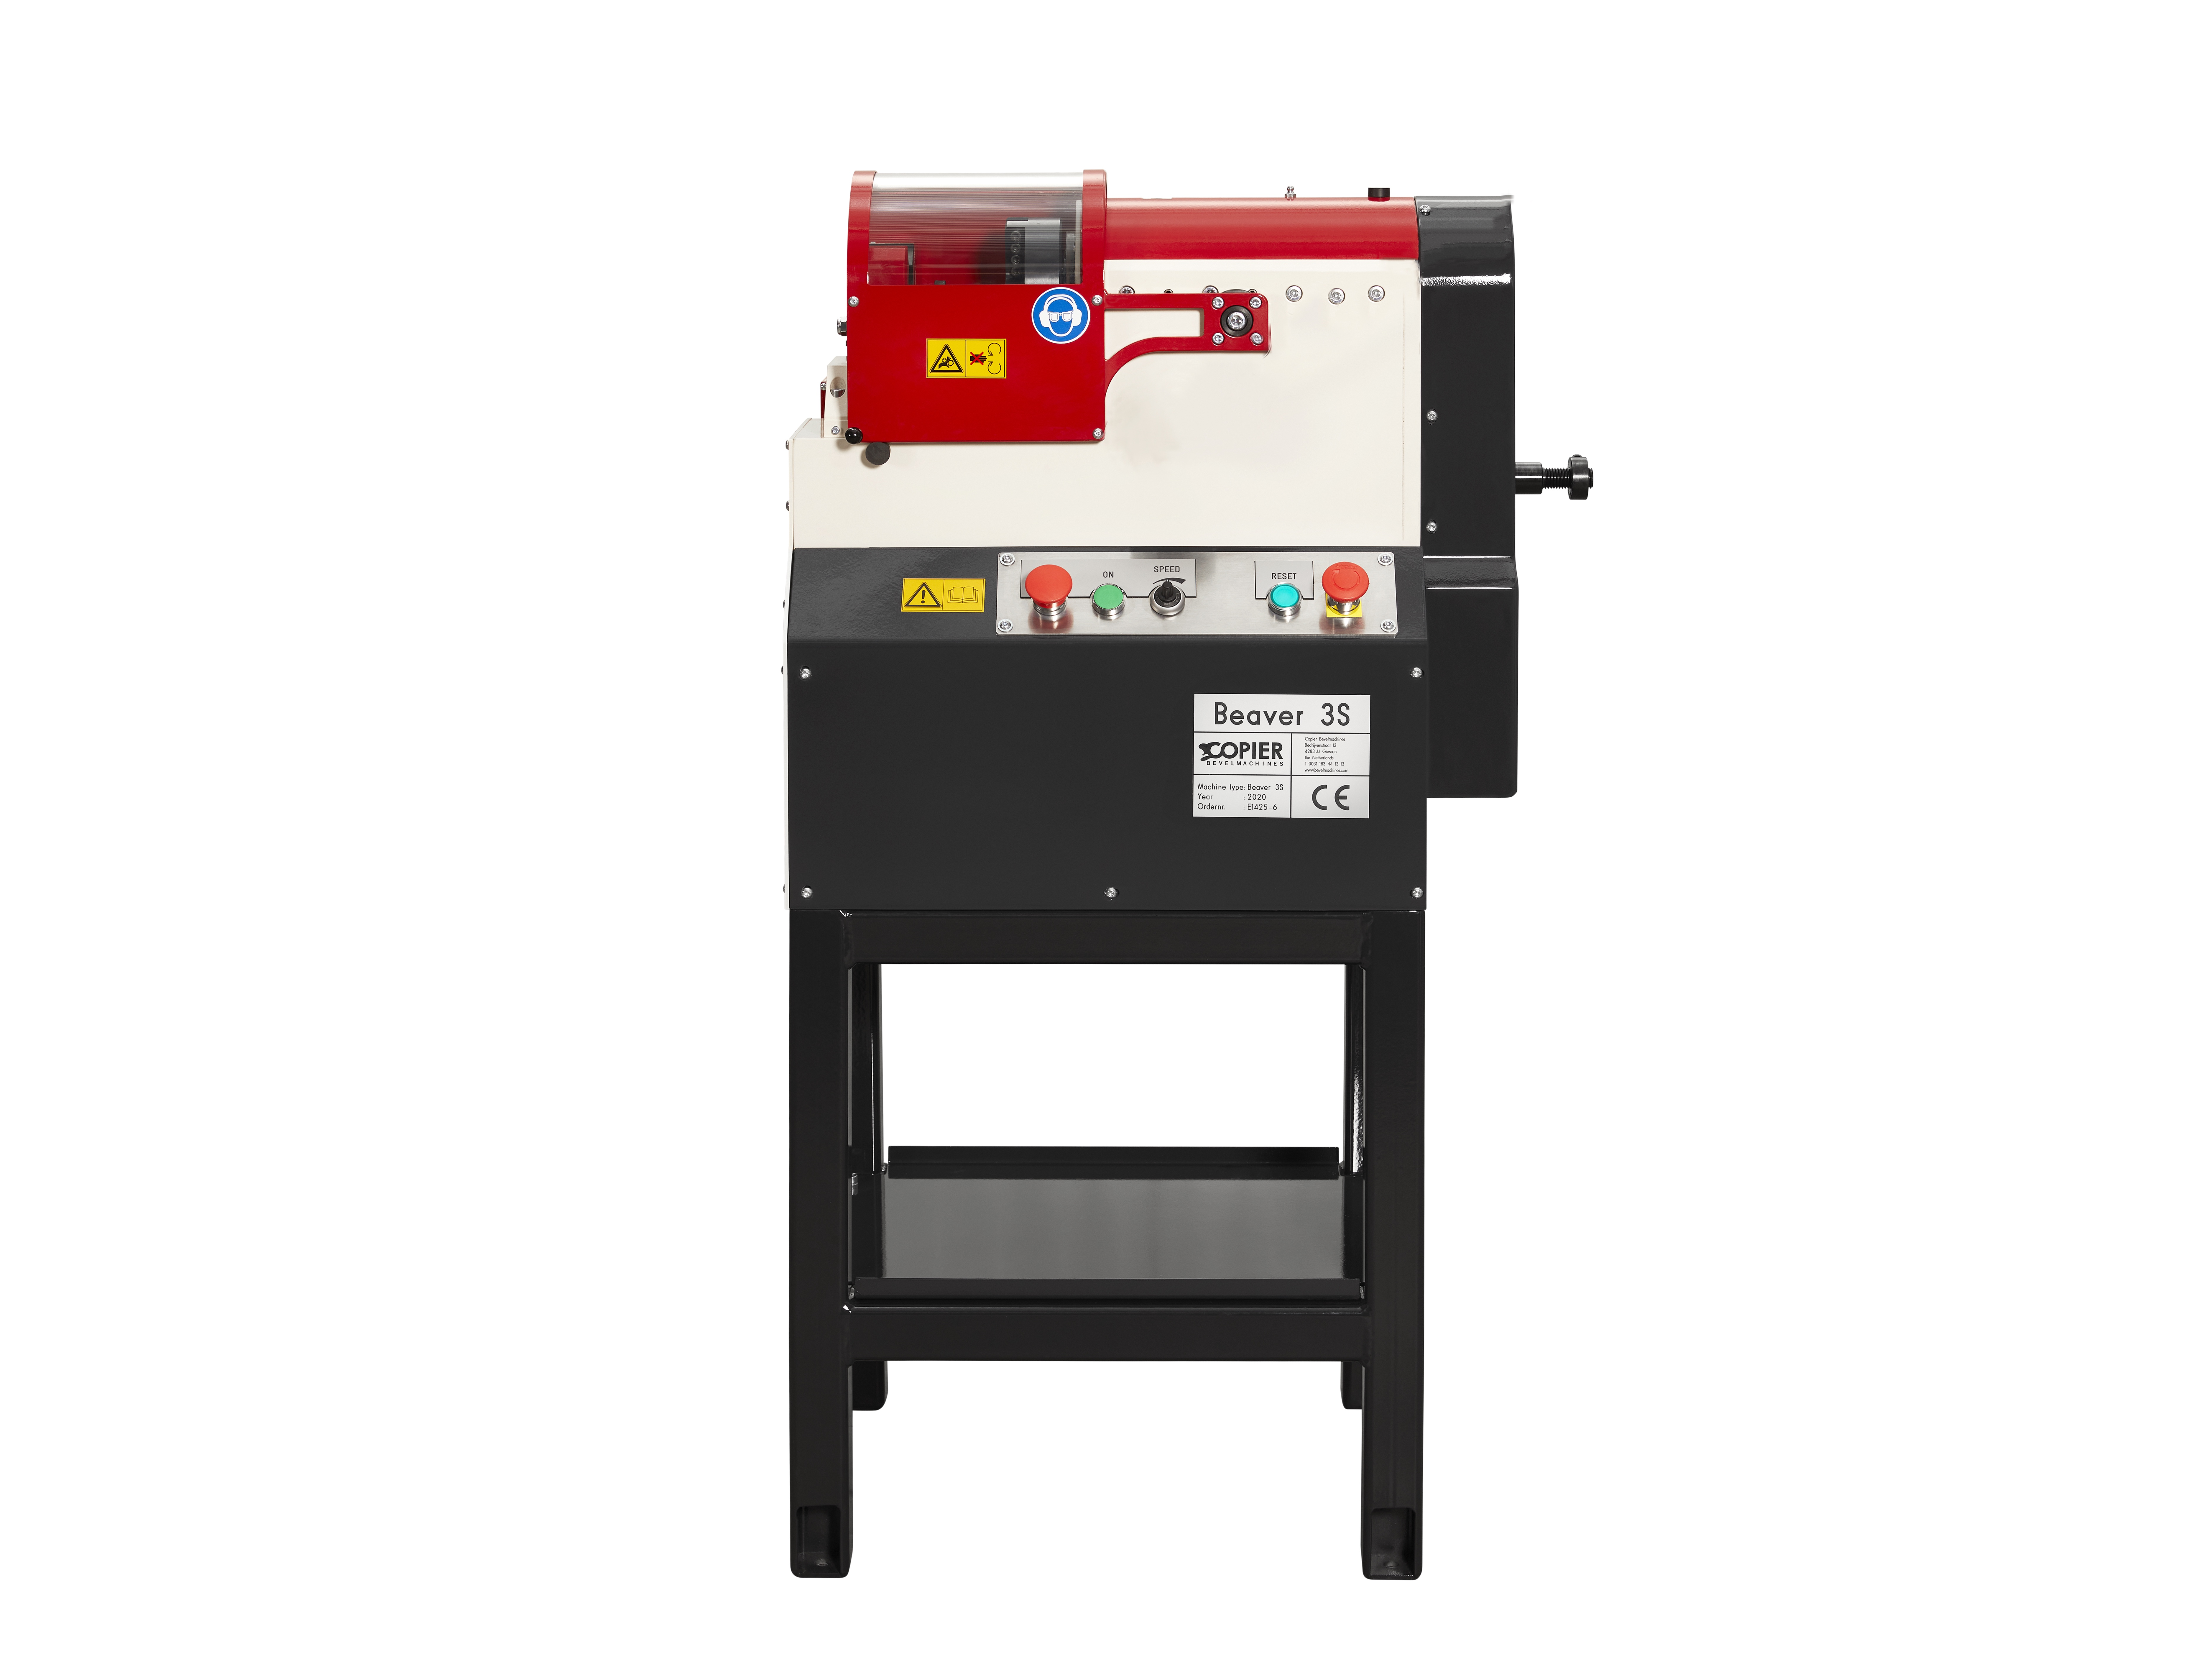 Beaver 3 S Automatic stationary  beveling  and chamfering machine for pipes tubes and bars up to outside diameter 3 inch